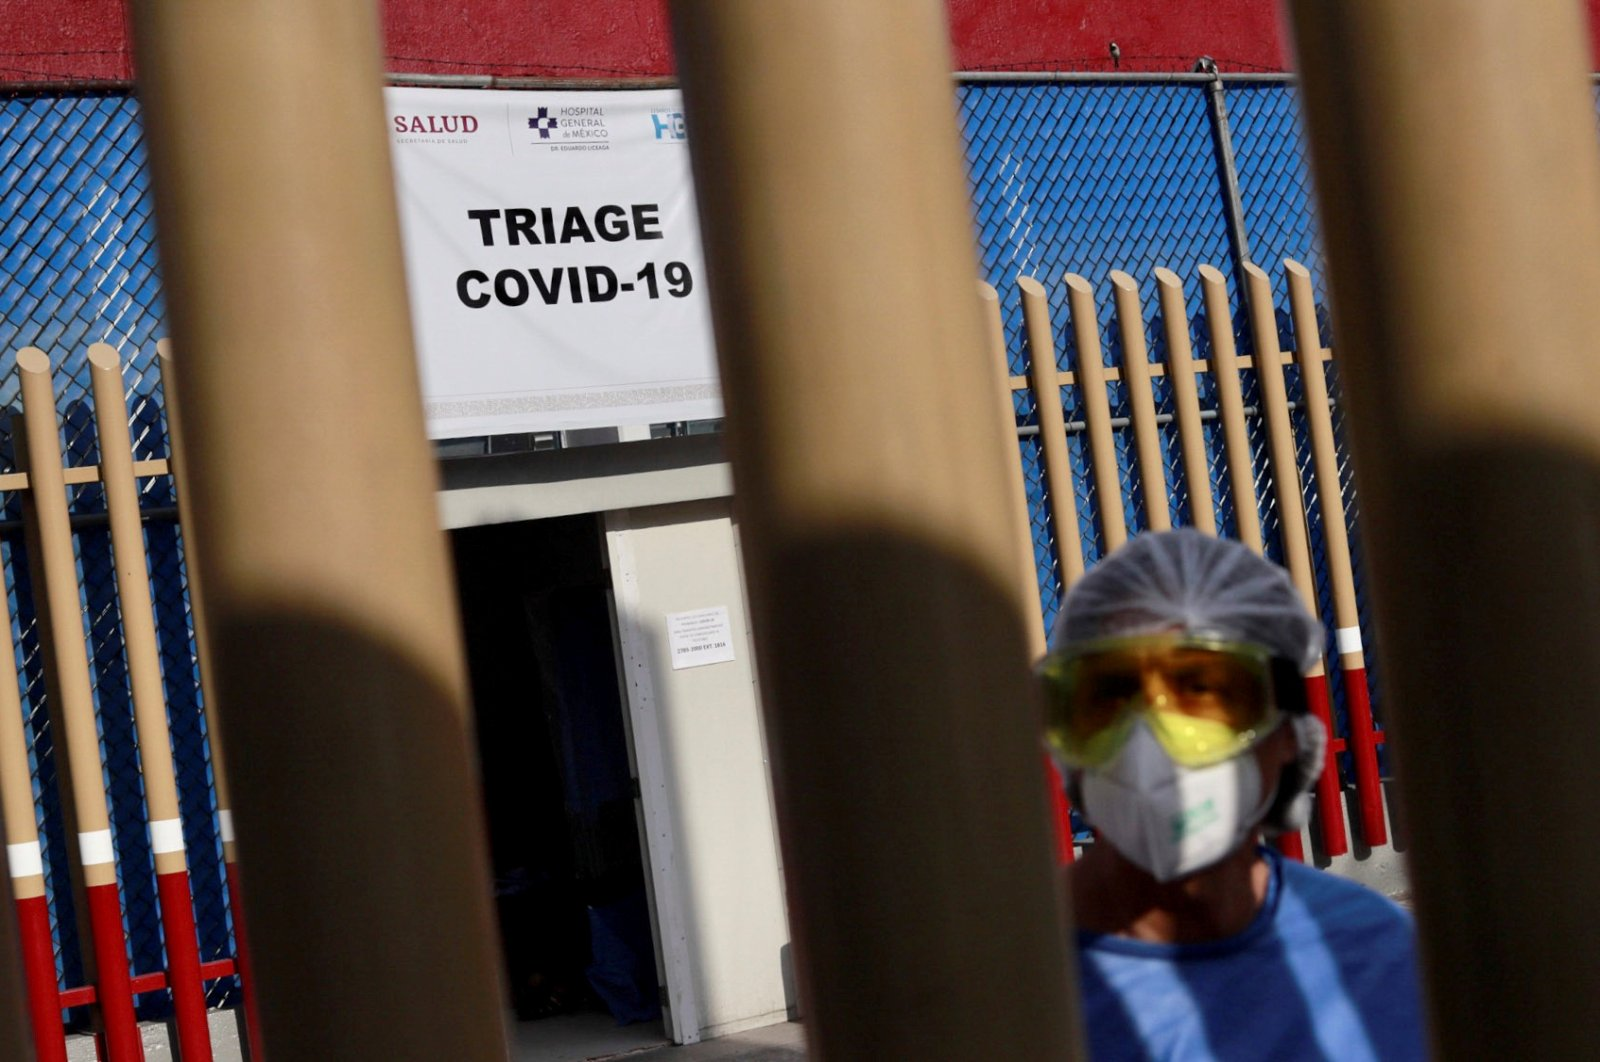 A health worker stands by the entrance of the triage for patients with COVID-19 as the outbreak continues in Mexico City, Mexico, May 4 2020. (Reuters Photo)